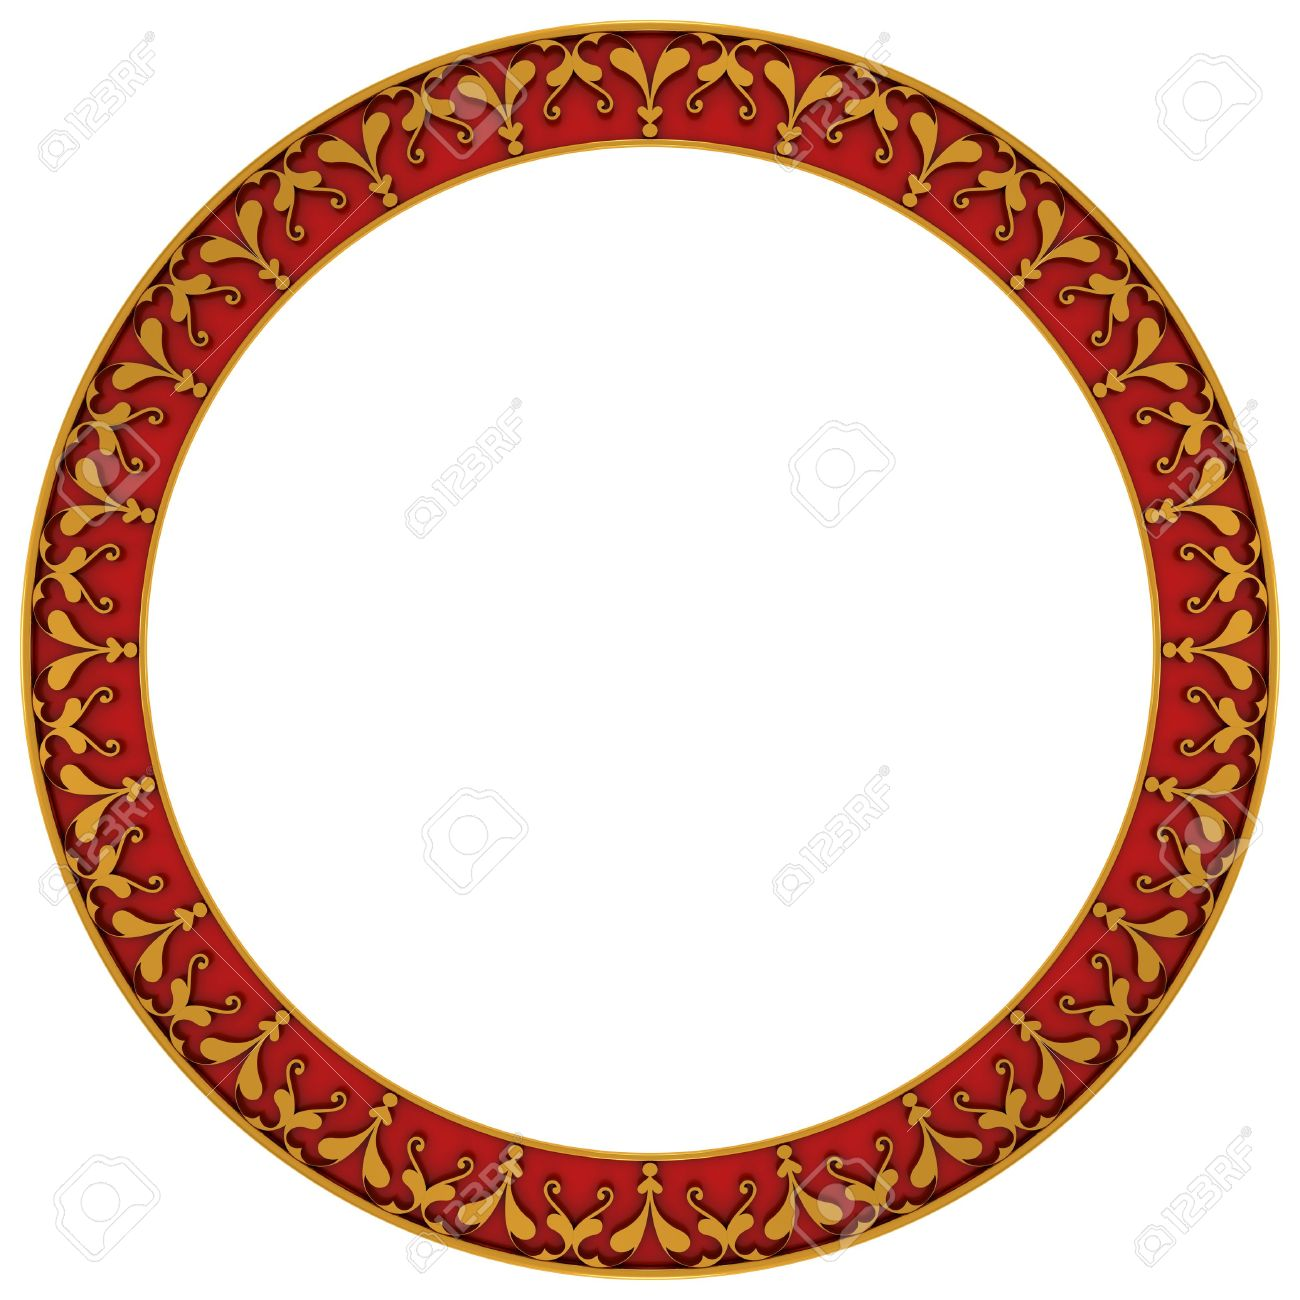 round frame made of gold on a white background stock photo 10752006